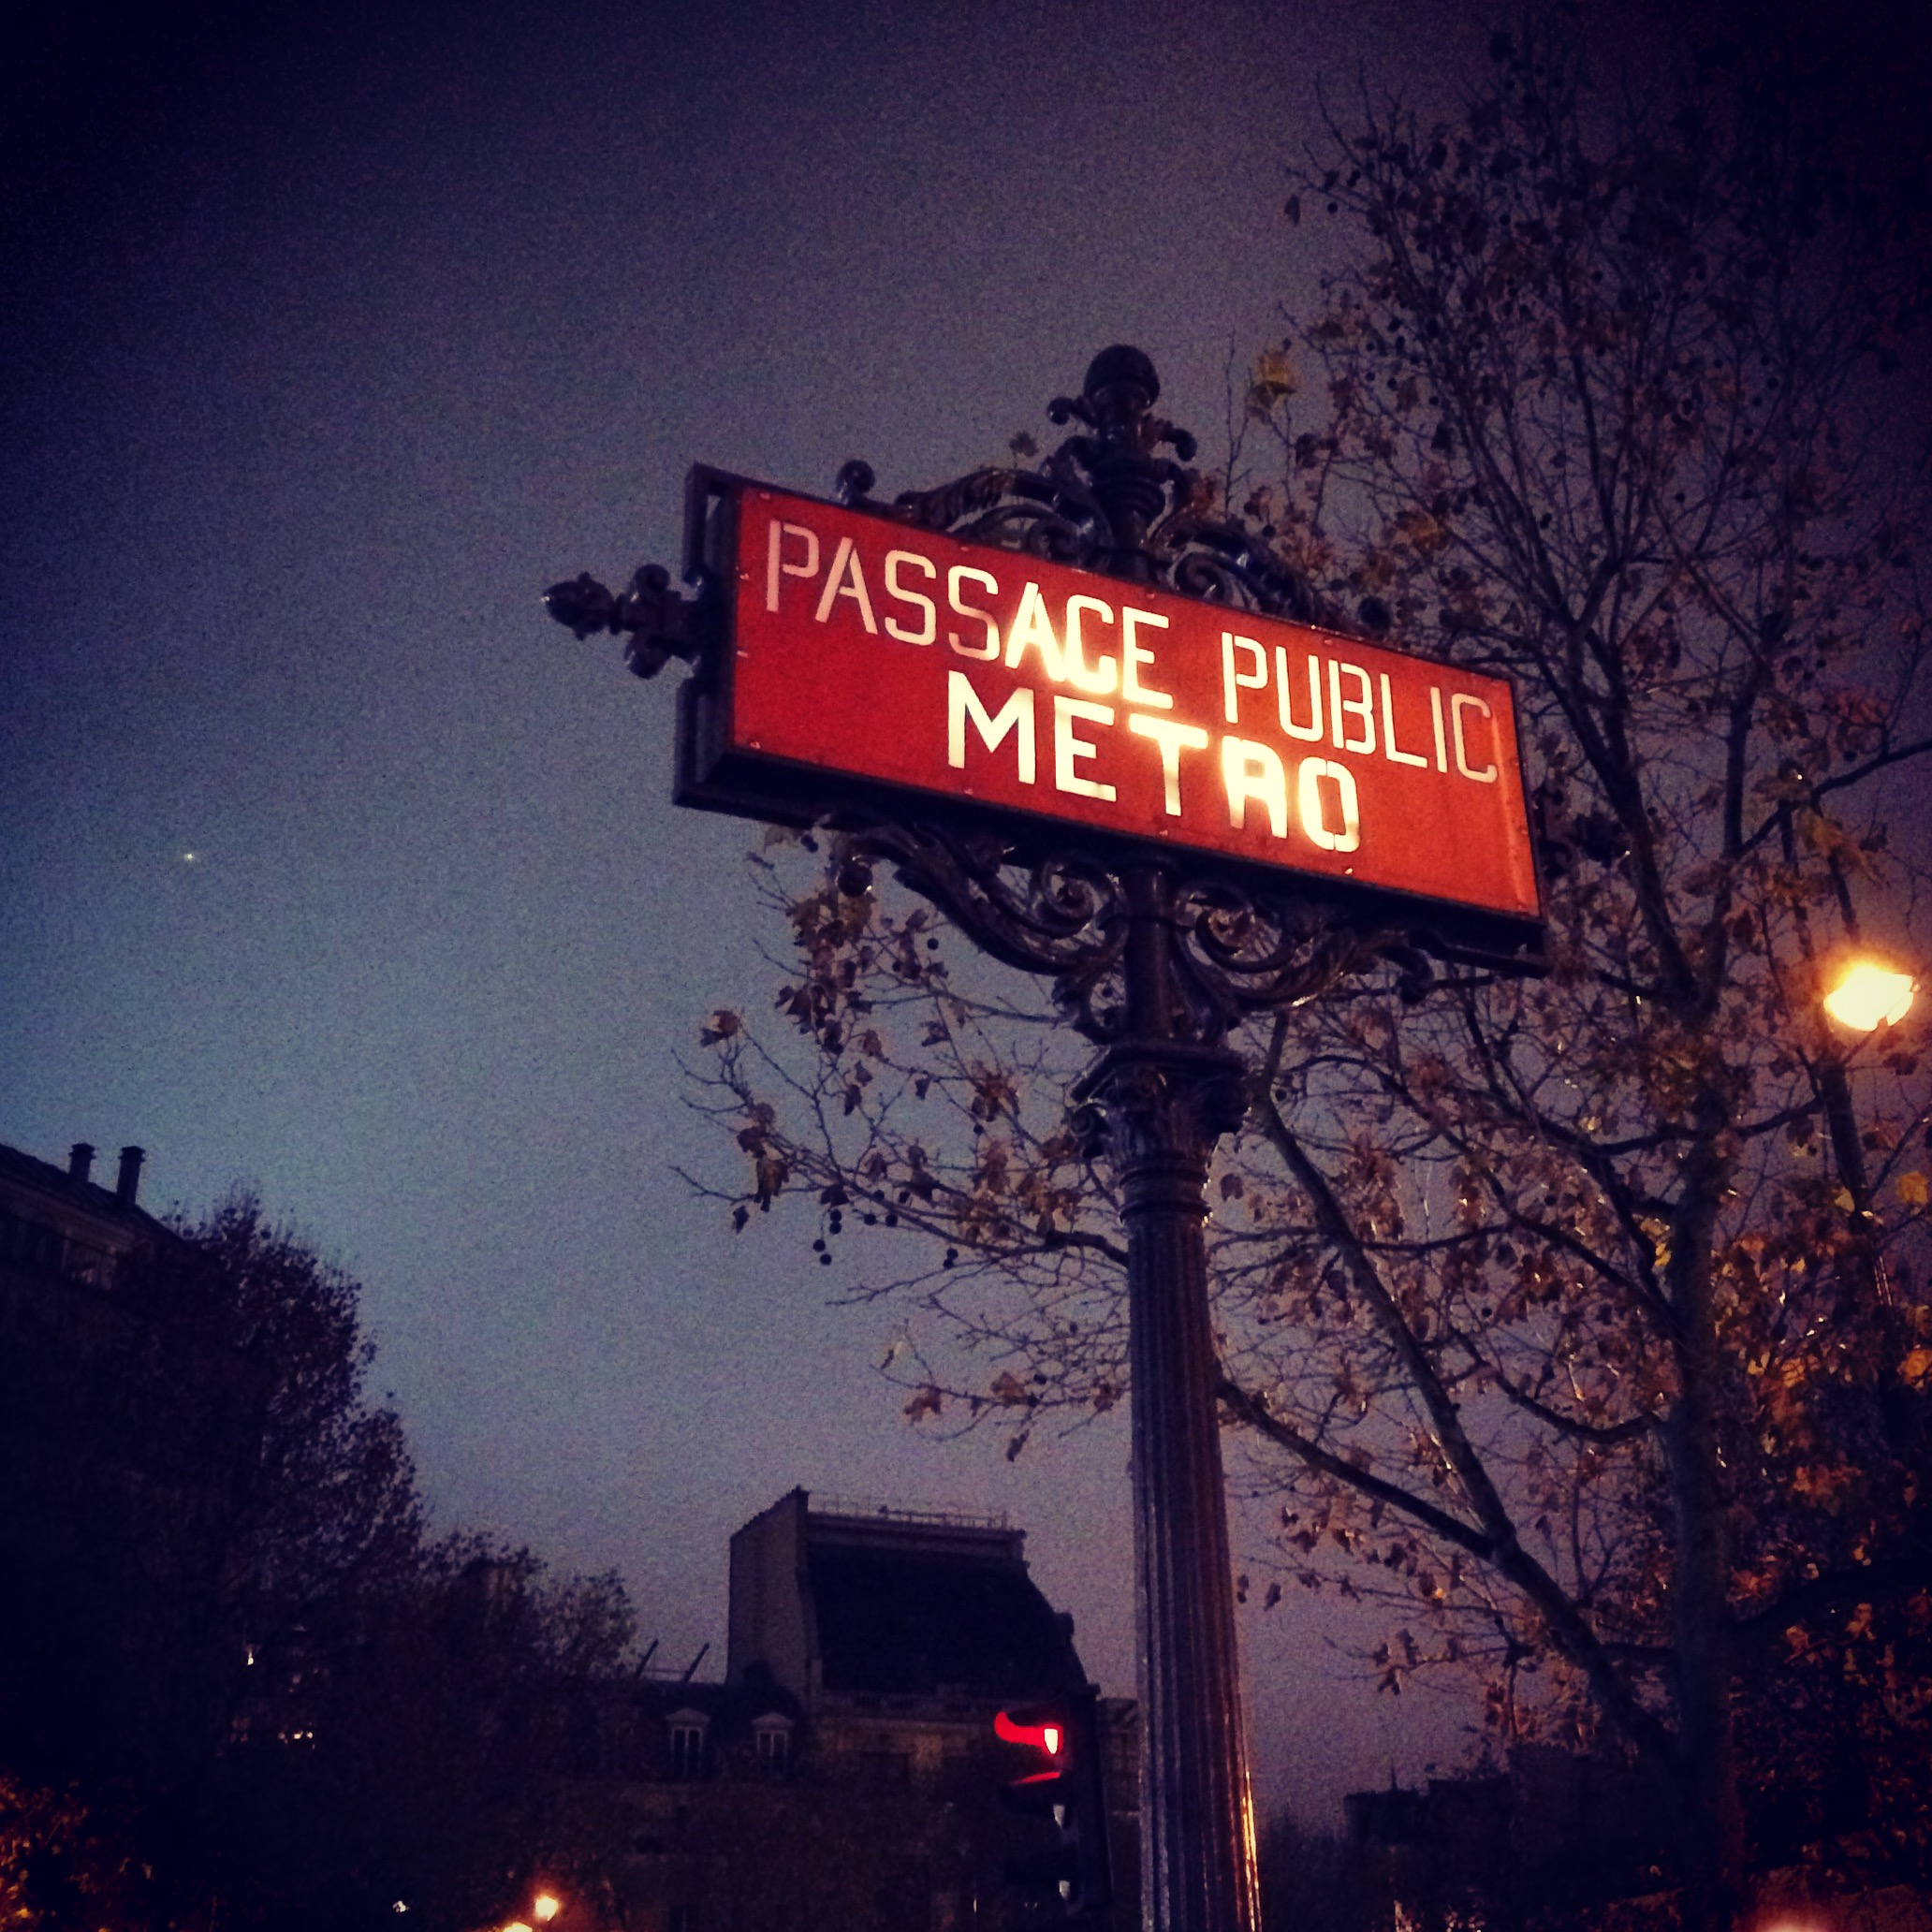 When I was in Paris I took a photo of this Metro sign at night